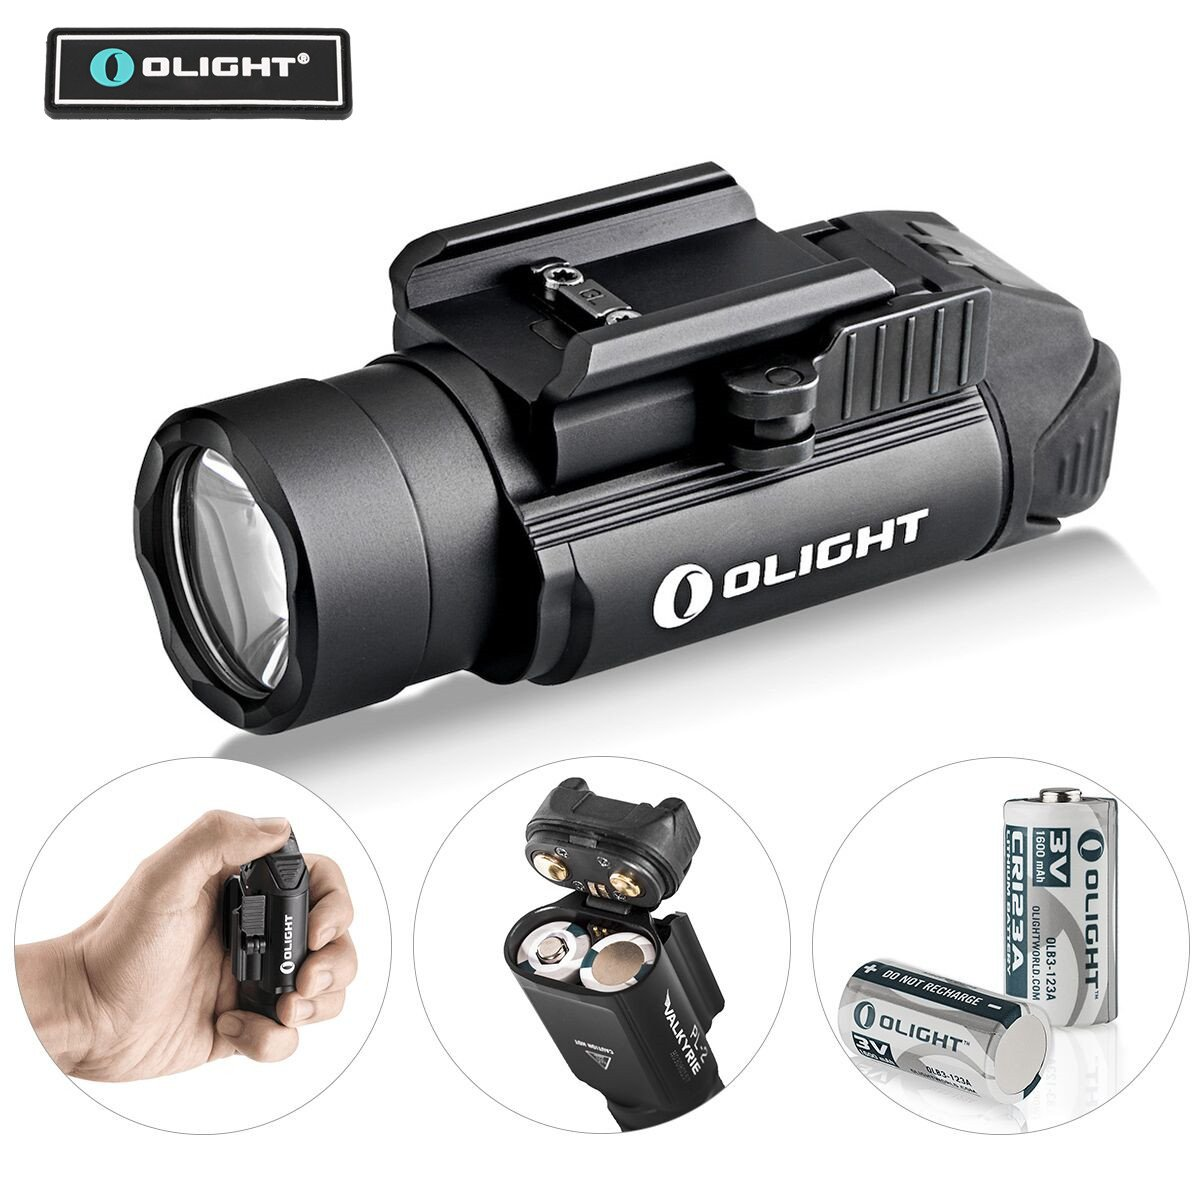 Bundle : Olight PL-2,PL2, pl ii Valkyrie 1200 Lumen rail mounted compact pistol light with 2 x cr123a batteries weaponlight flashlight with olight patch